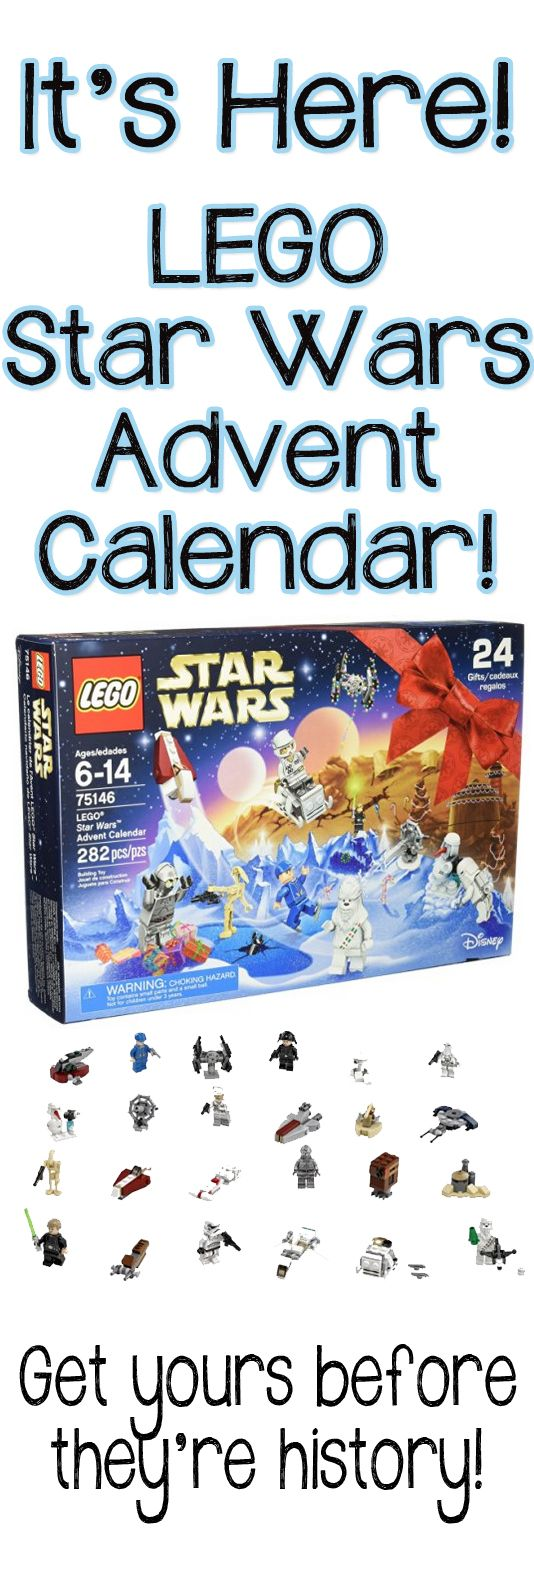 LEGO Star Wars Advent Calendar for 2016! Get yours before it's gone. They're on sale now!! Awesome Christmas present the whole family can enjoy!